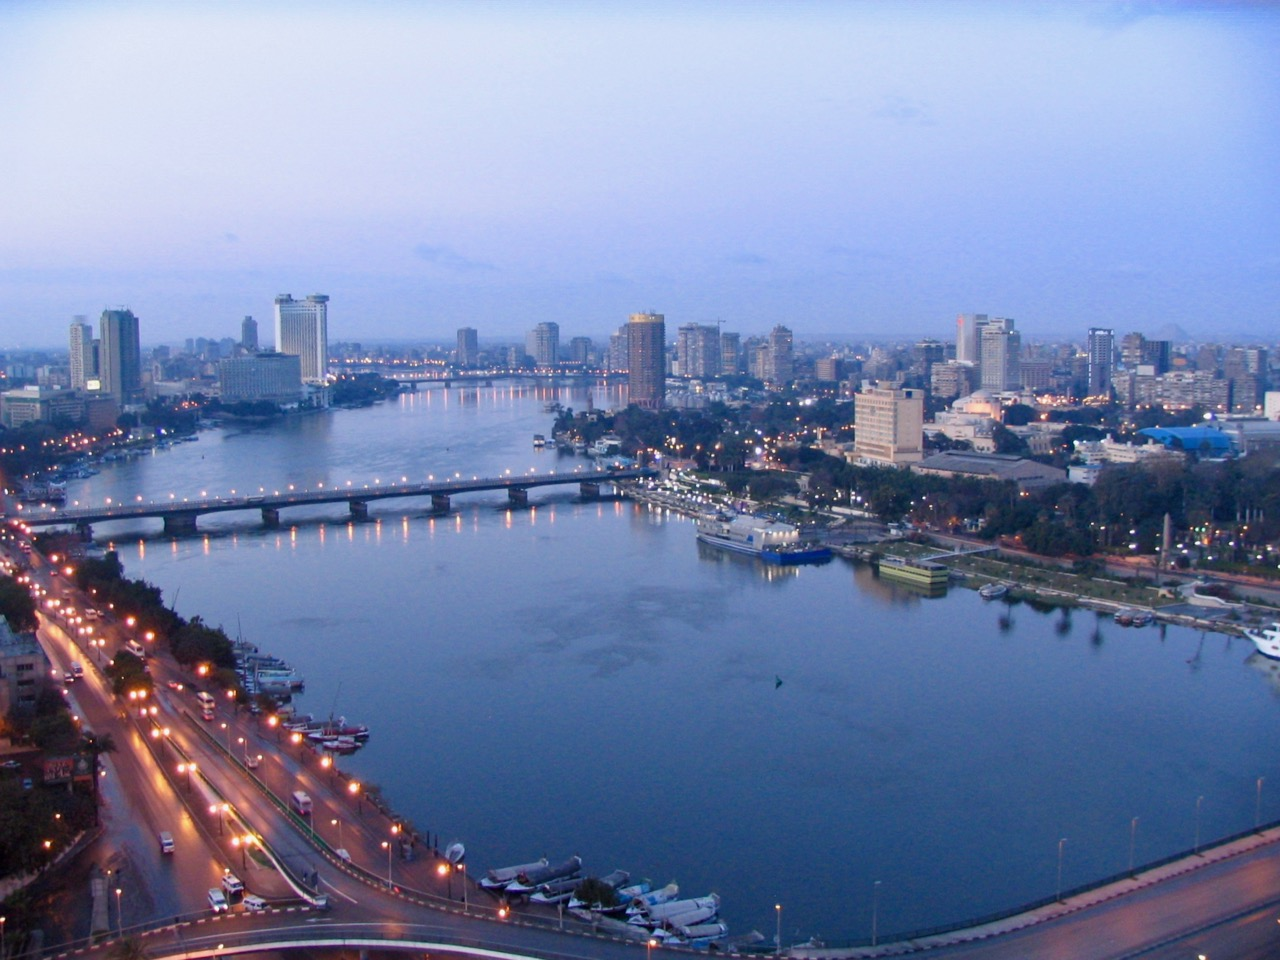 Cairo & Nile River